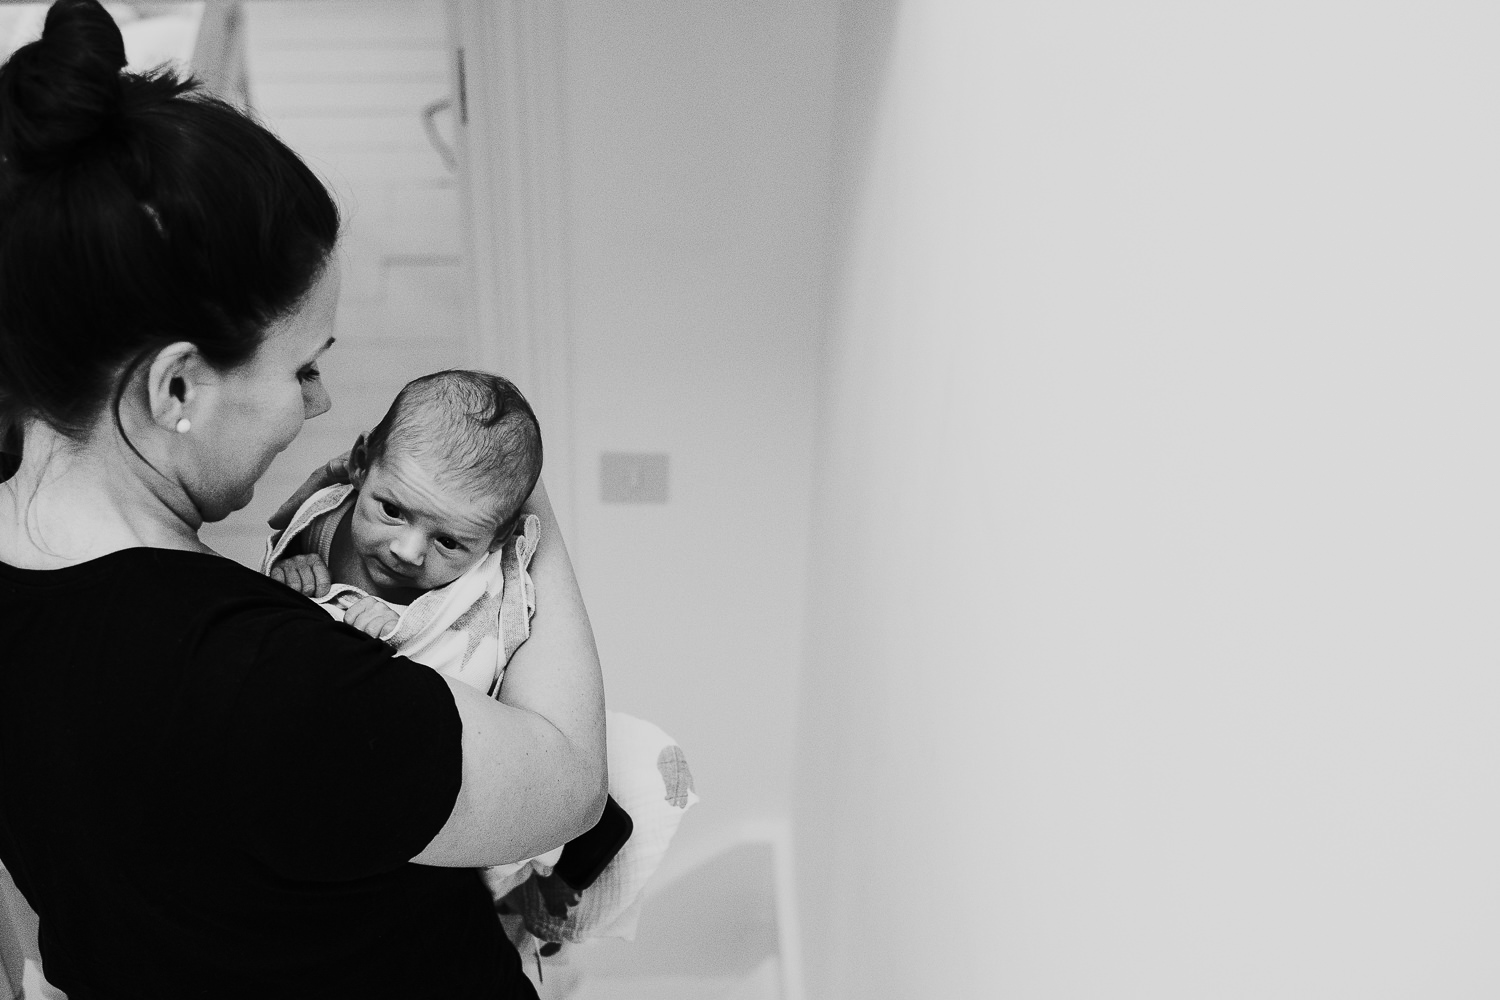 newborn baby boy being carried downstairs in mothers arms black and white photo